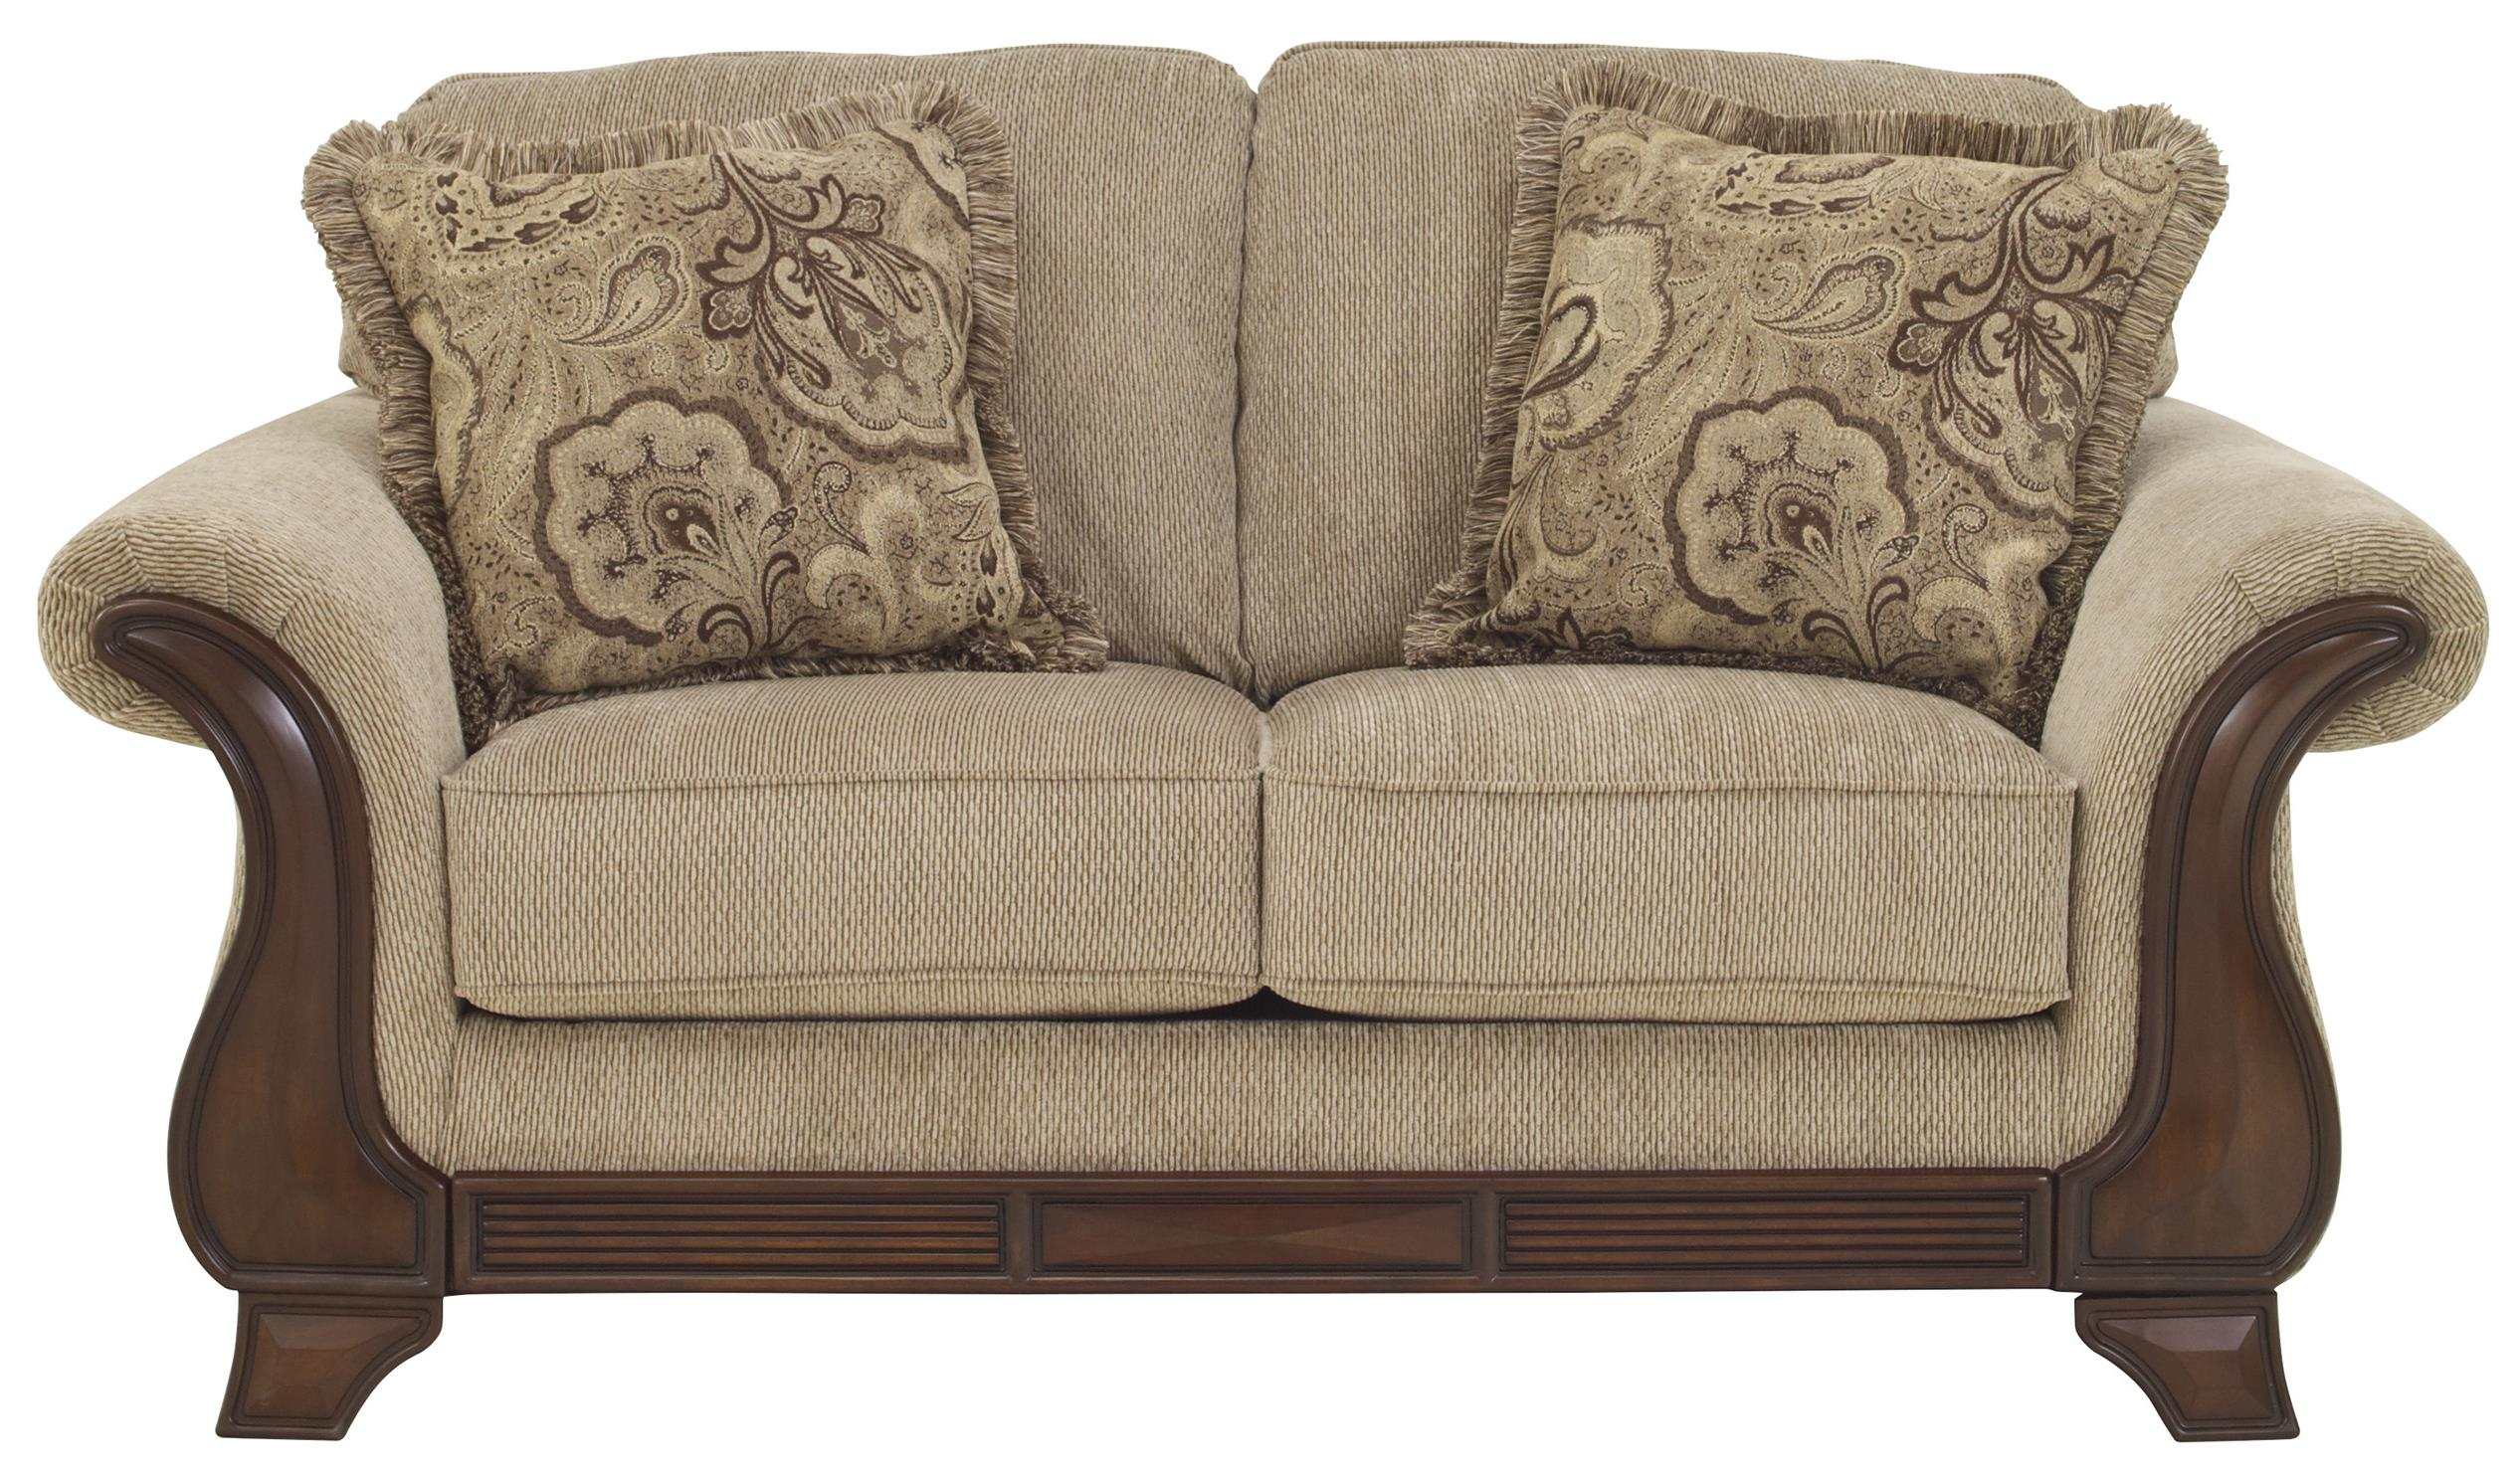 Signature Design by Ashley Lanett Loveseat - Item Number: 4490035